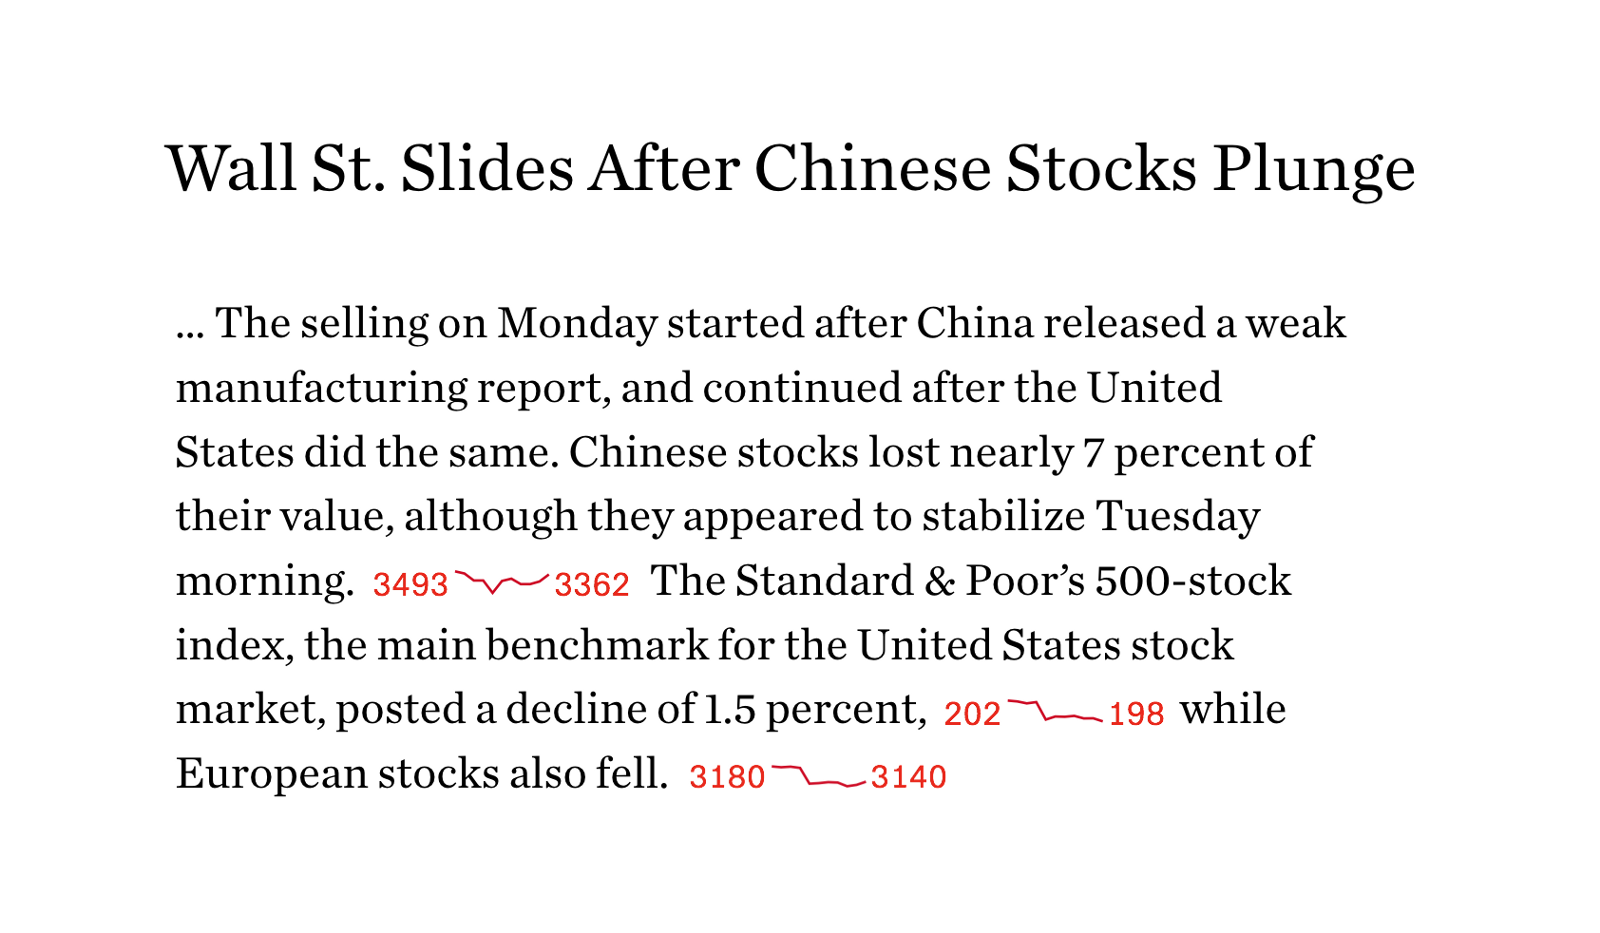 Source: http://www.nytimes.com/2016/01/05/business/international/stocks-asia-markets-china.html